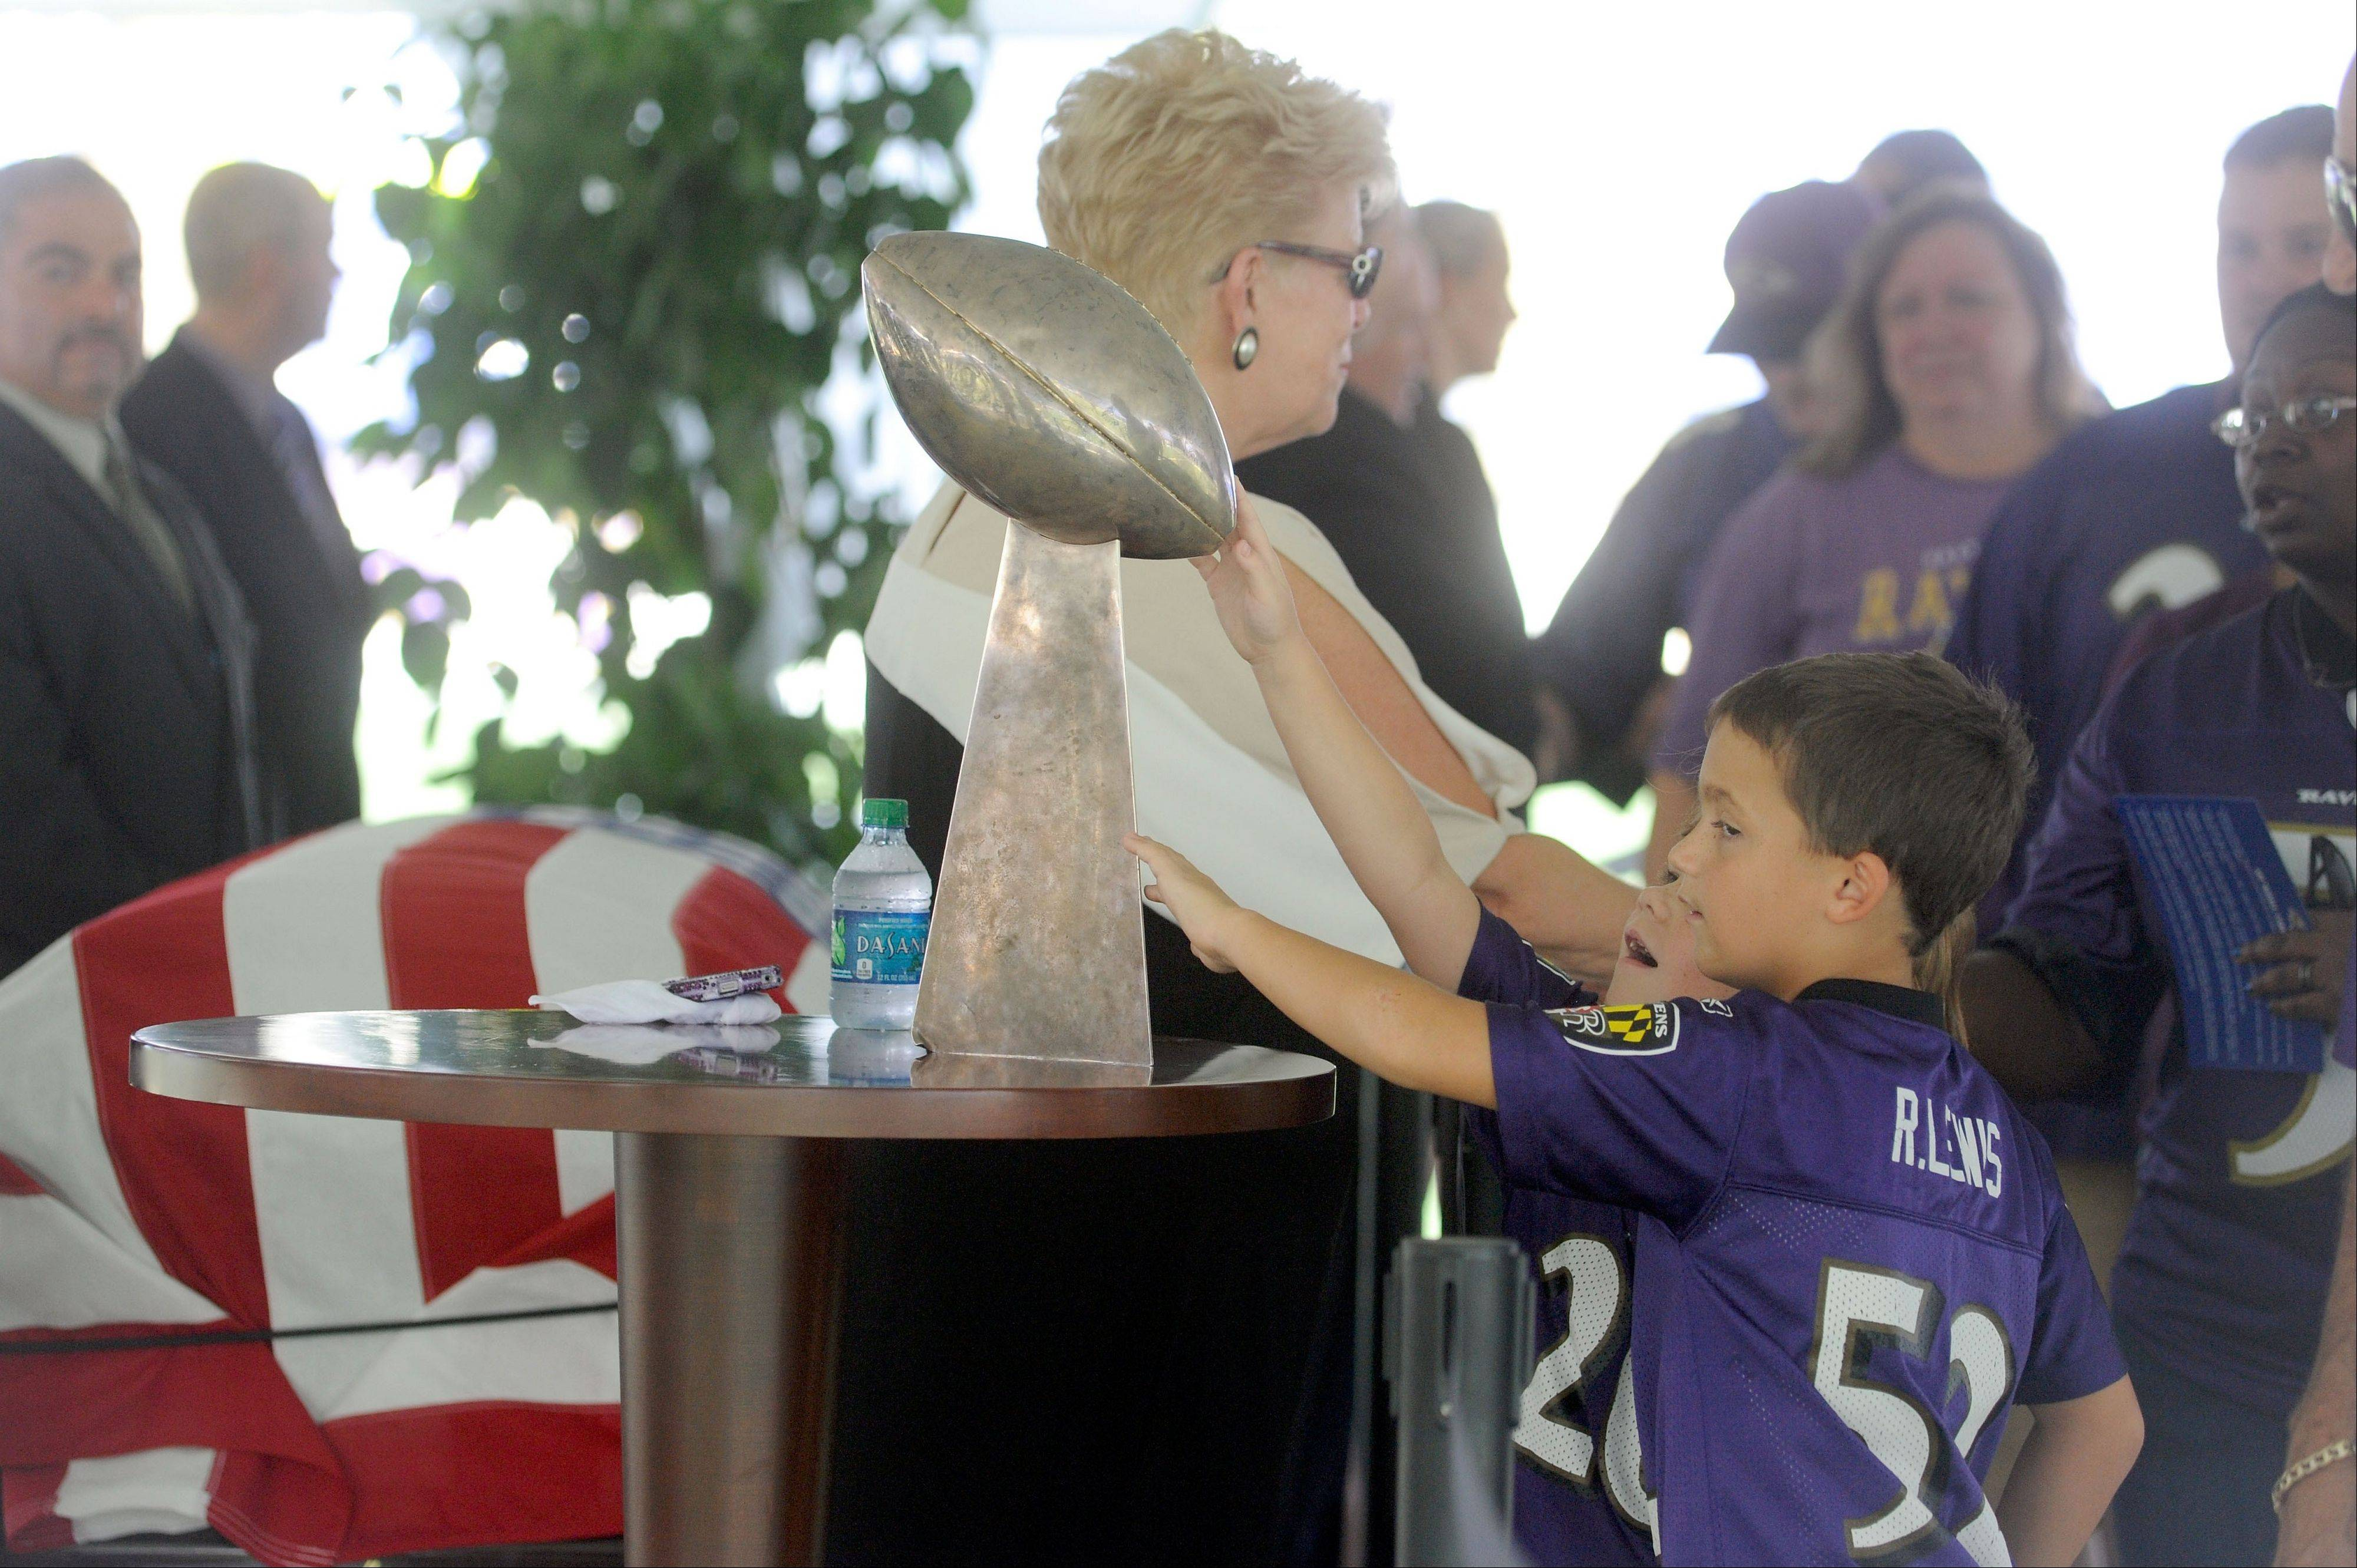 Children touch the Baltimore Ravens' Vince Lombardi Trophy from the team's 2001 Super Bowl championship during a public viewing Saturday of the casket of former Ravens owner Art Modell at M&T Bank Stadium in Baltimore.